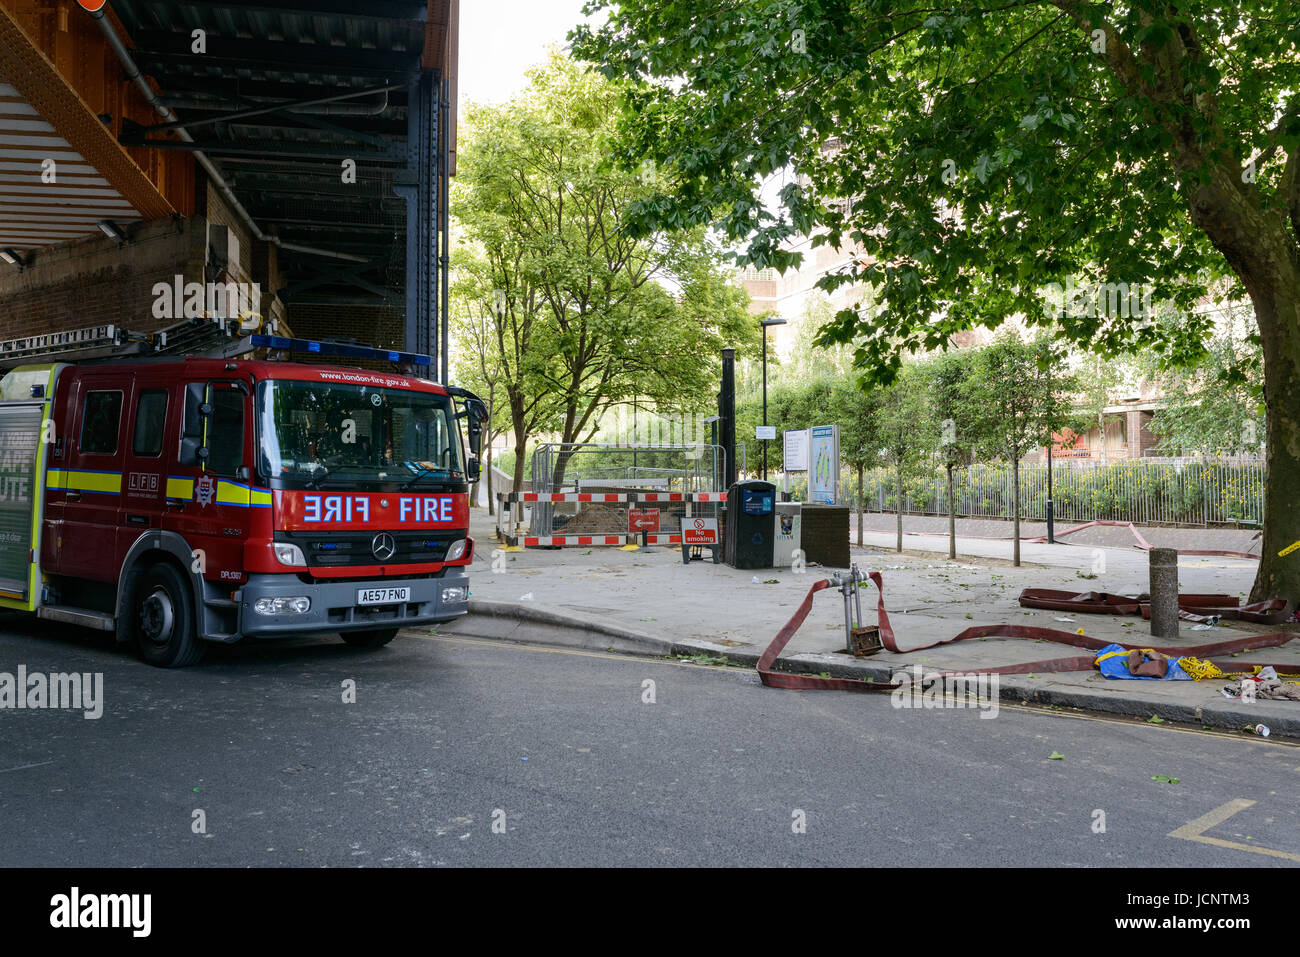 London, UK. 15th June, 2017. Fire engine near Grenfell Tower the day after a fire destroyed the 24-storey block - Stock Image